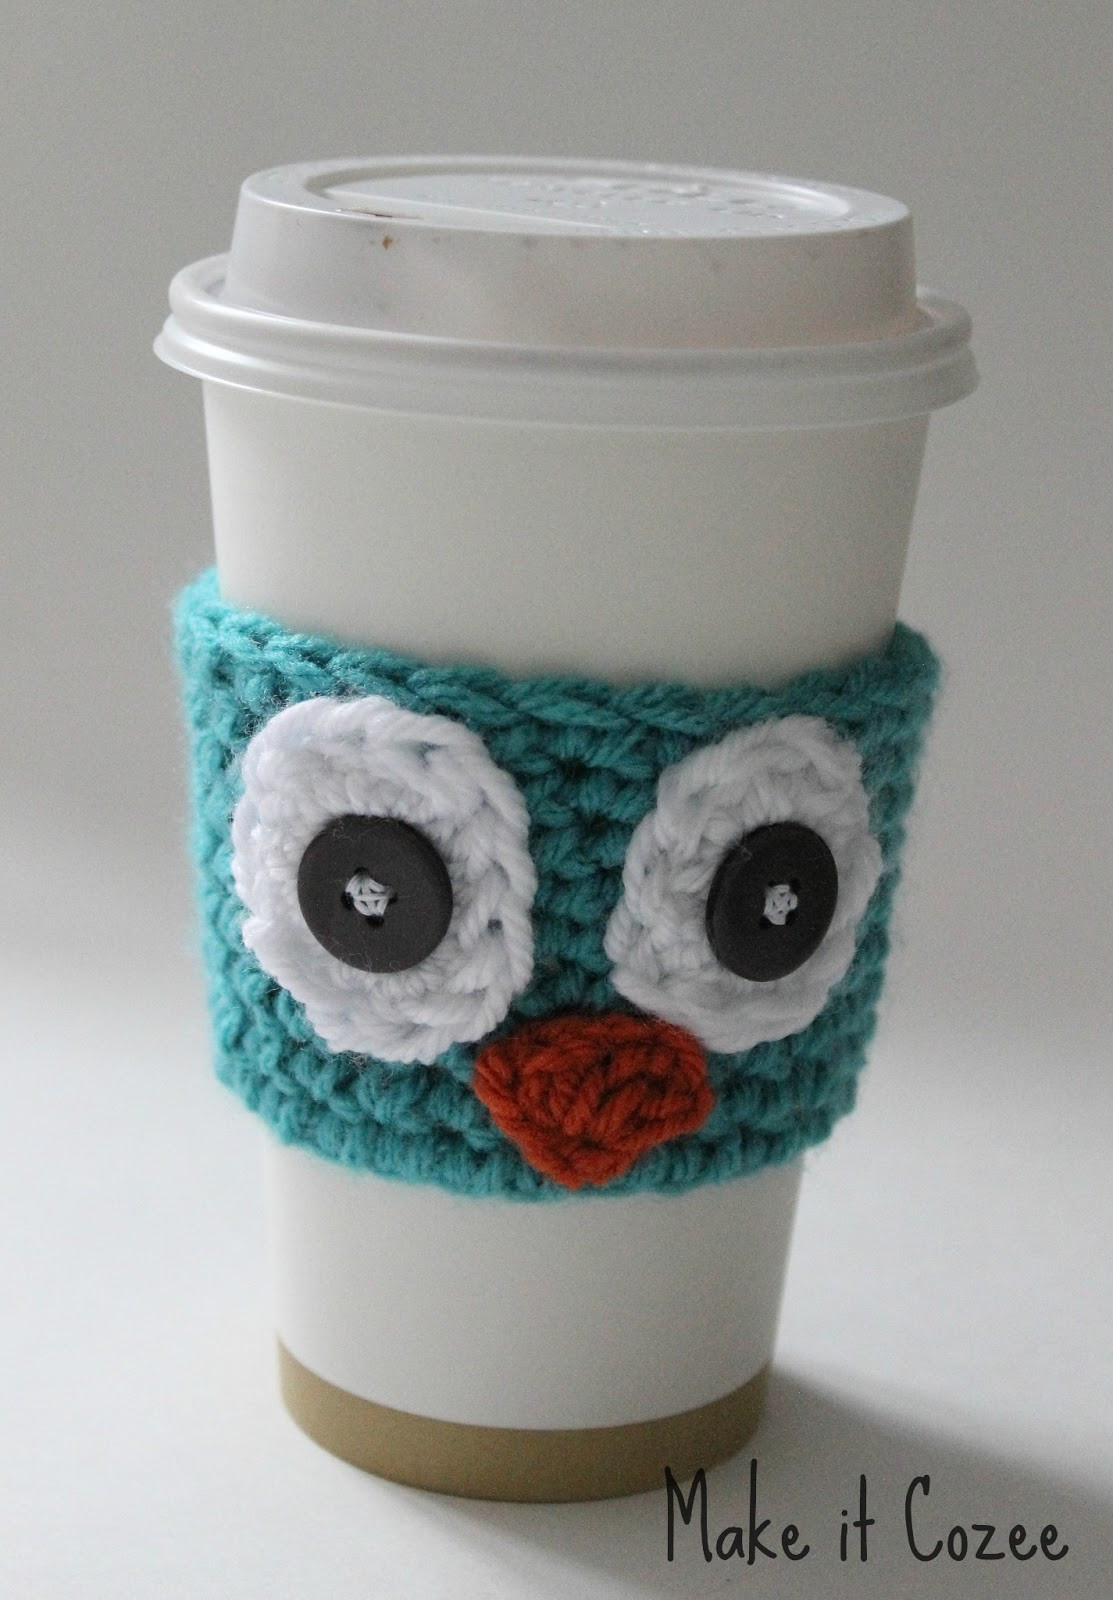 Crochet Coffee Cup Cozy Inspirational Make It Cozee Crochet Owl Coffee Cozy Of Crochet Coffee Cup Cozy Inspirational 35 Easy Crochet Patterns